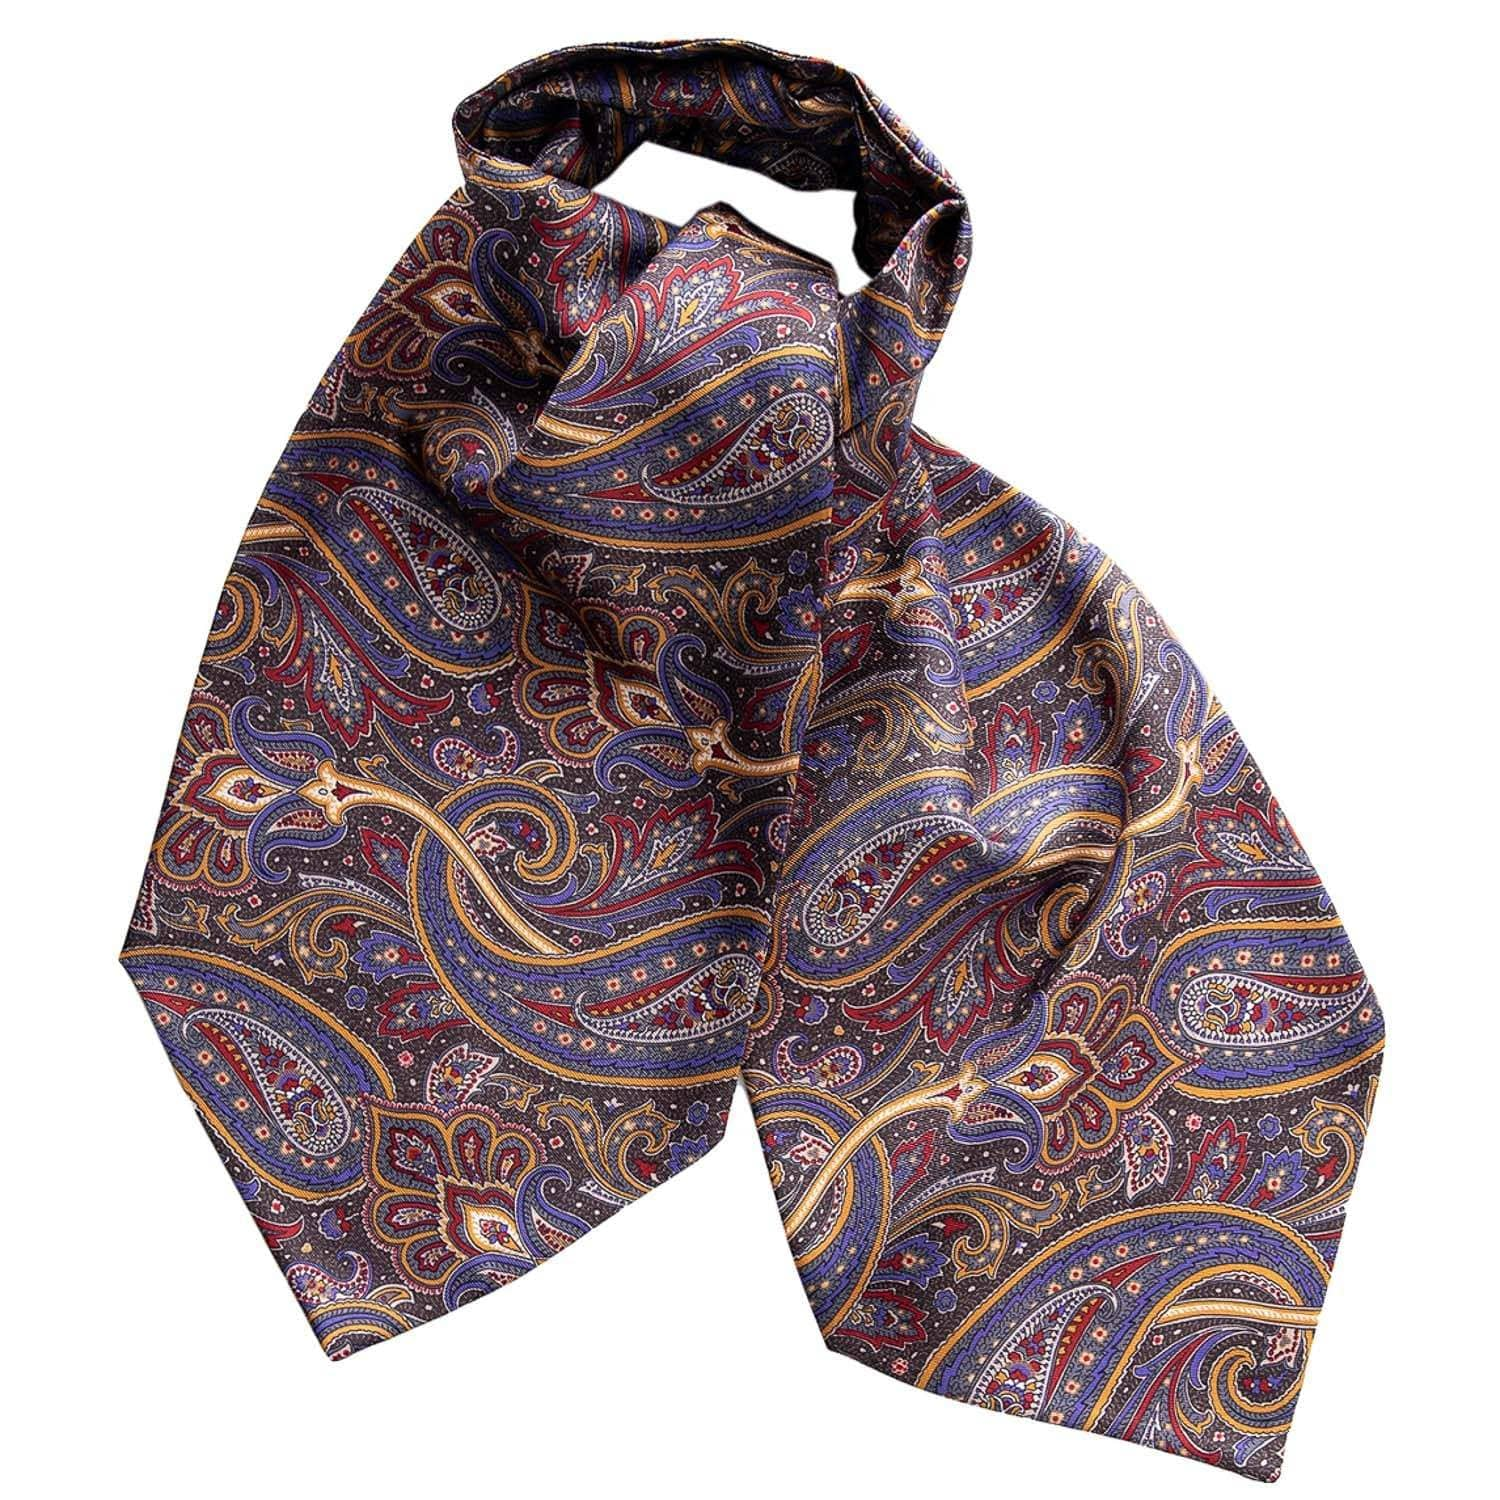 Mens Silk Ascot Cravat - Paisley - Made in Italy